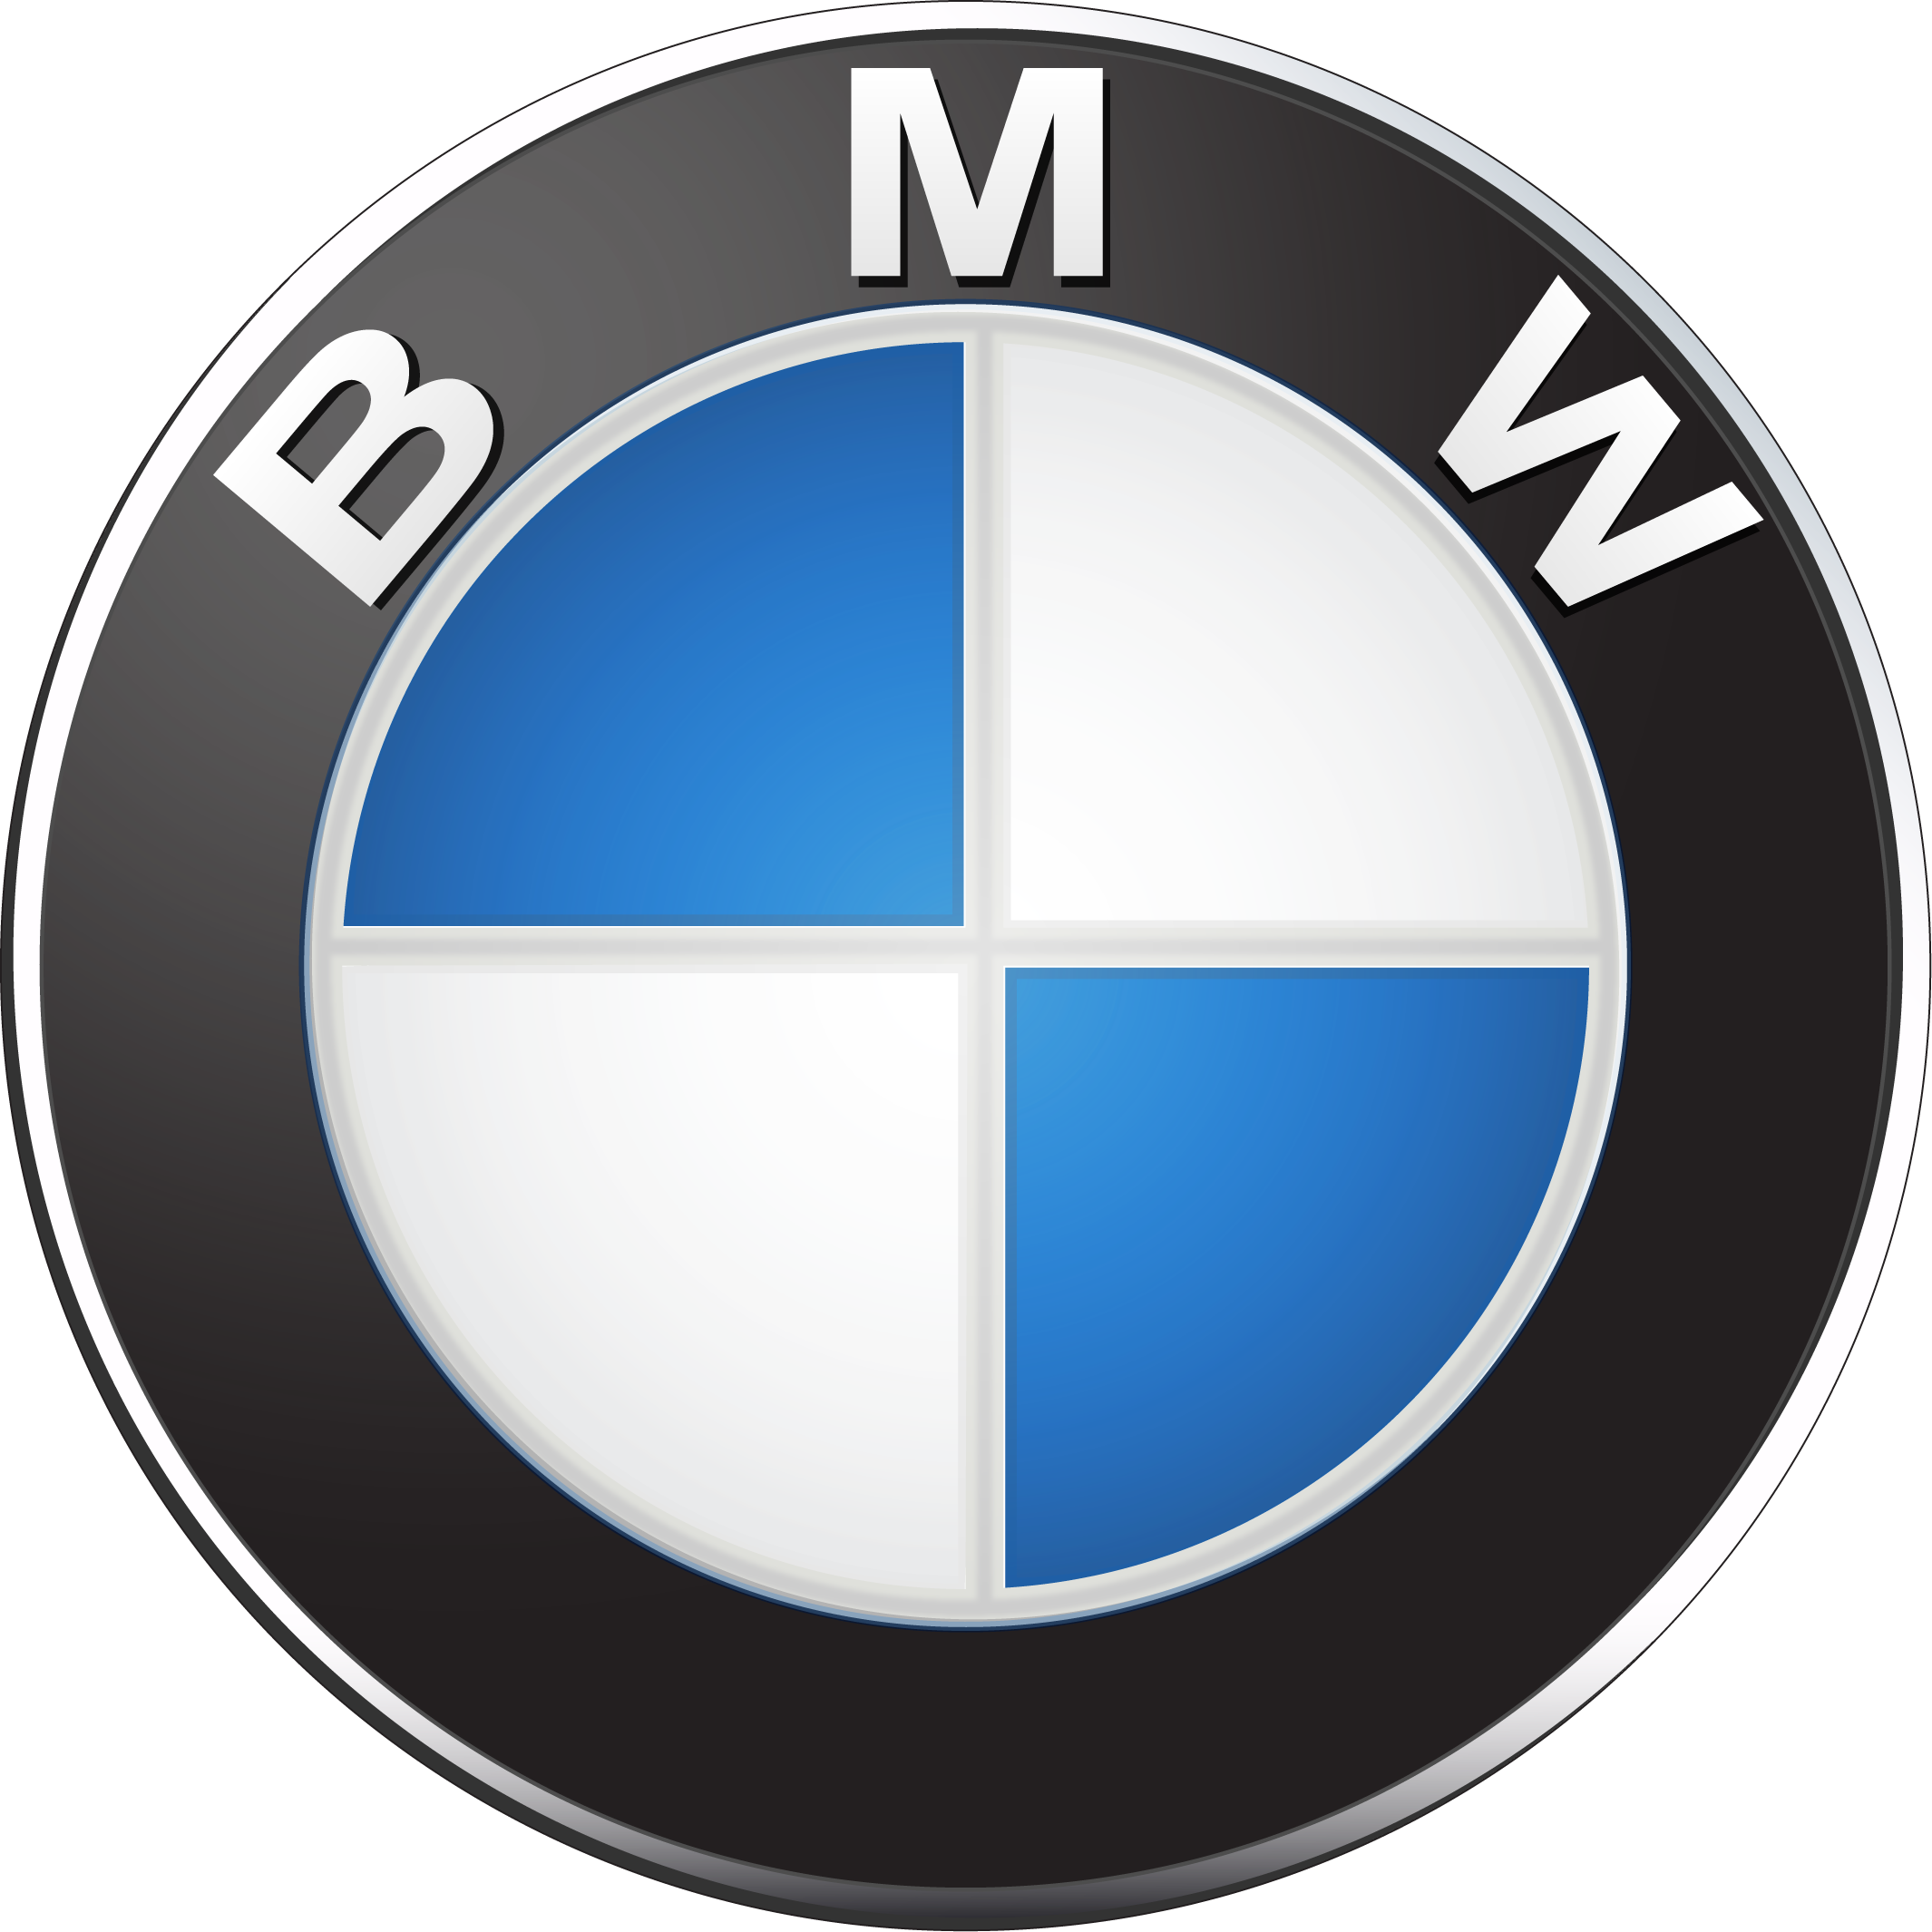 bmw logo free transparent png logos cisco logo vector download cisco logo vectoriel